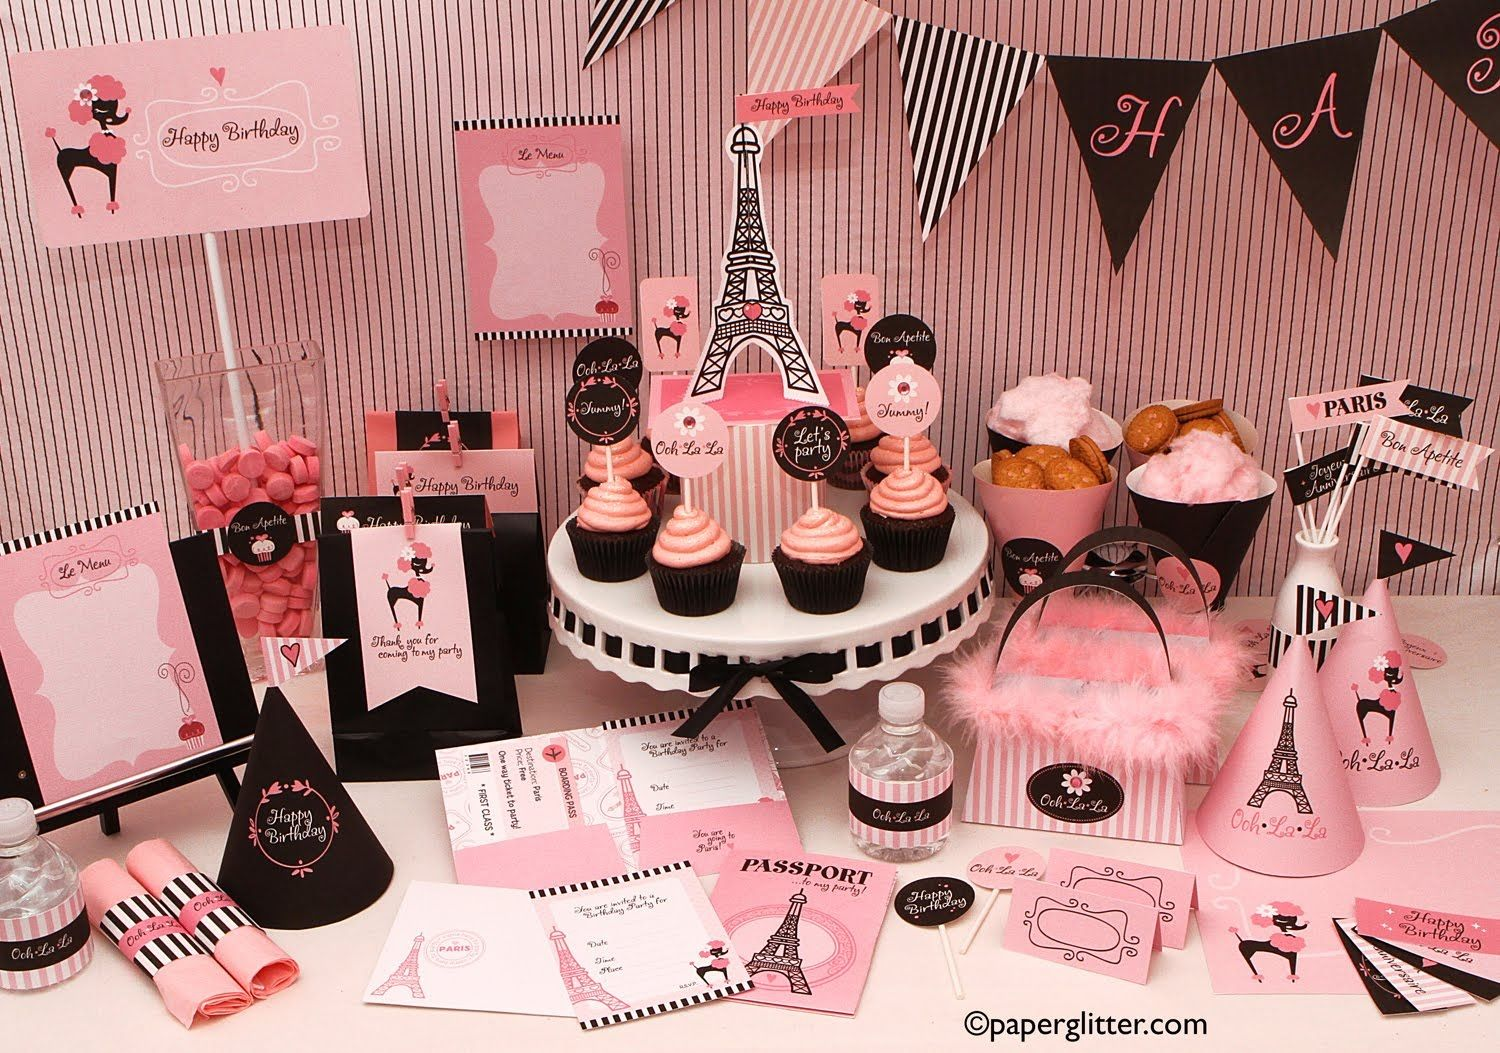 Paris themed birthday party ideas - 10th Birthday Party Maybe Paris Themed Partiesthemed